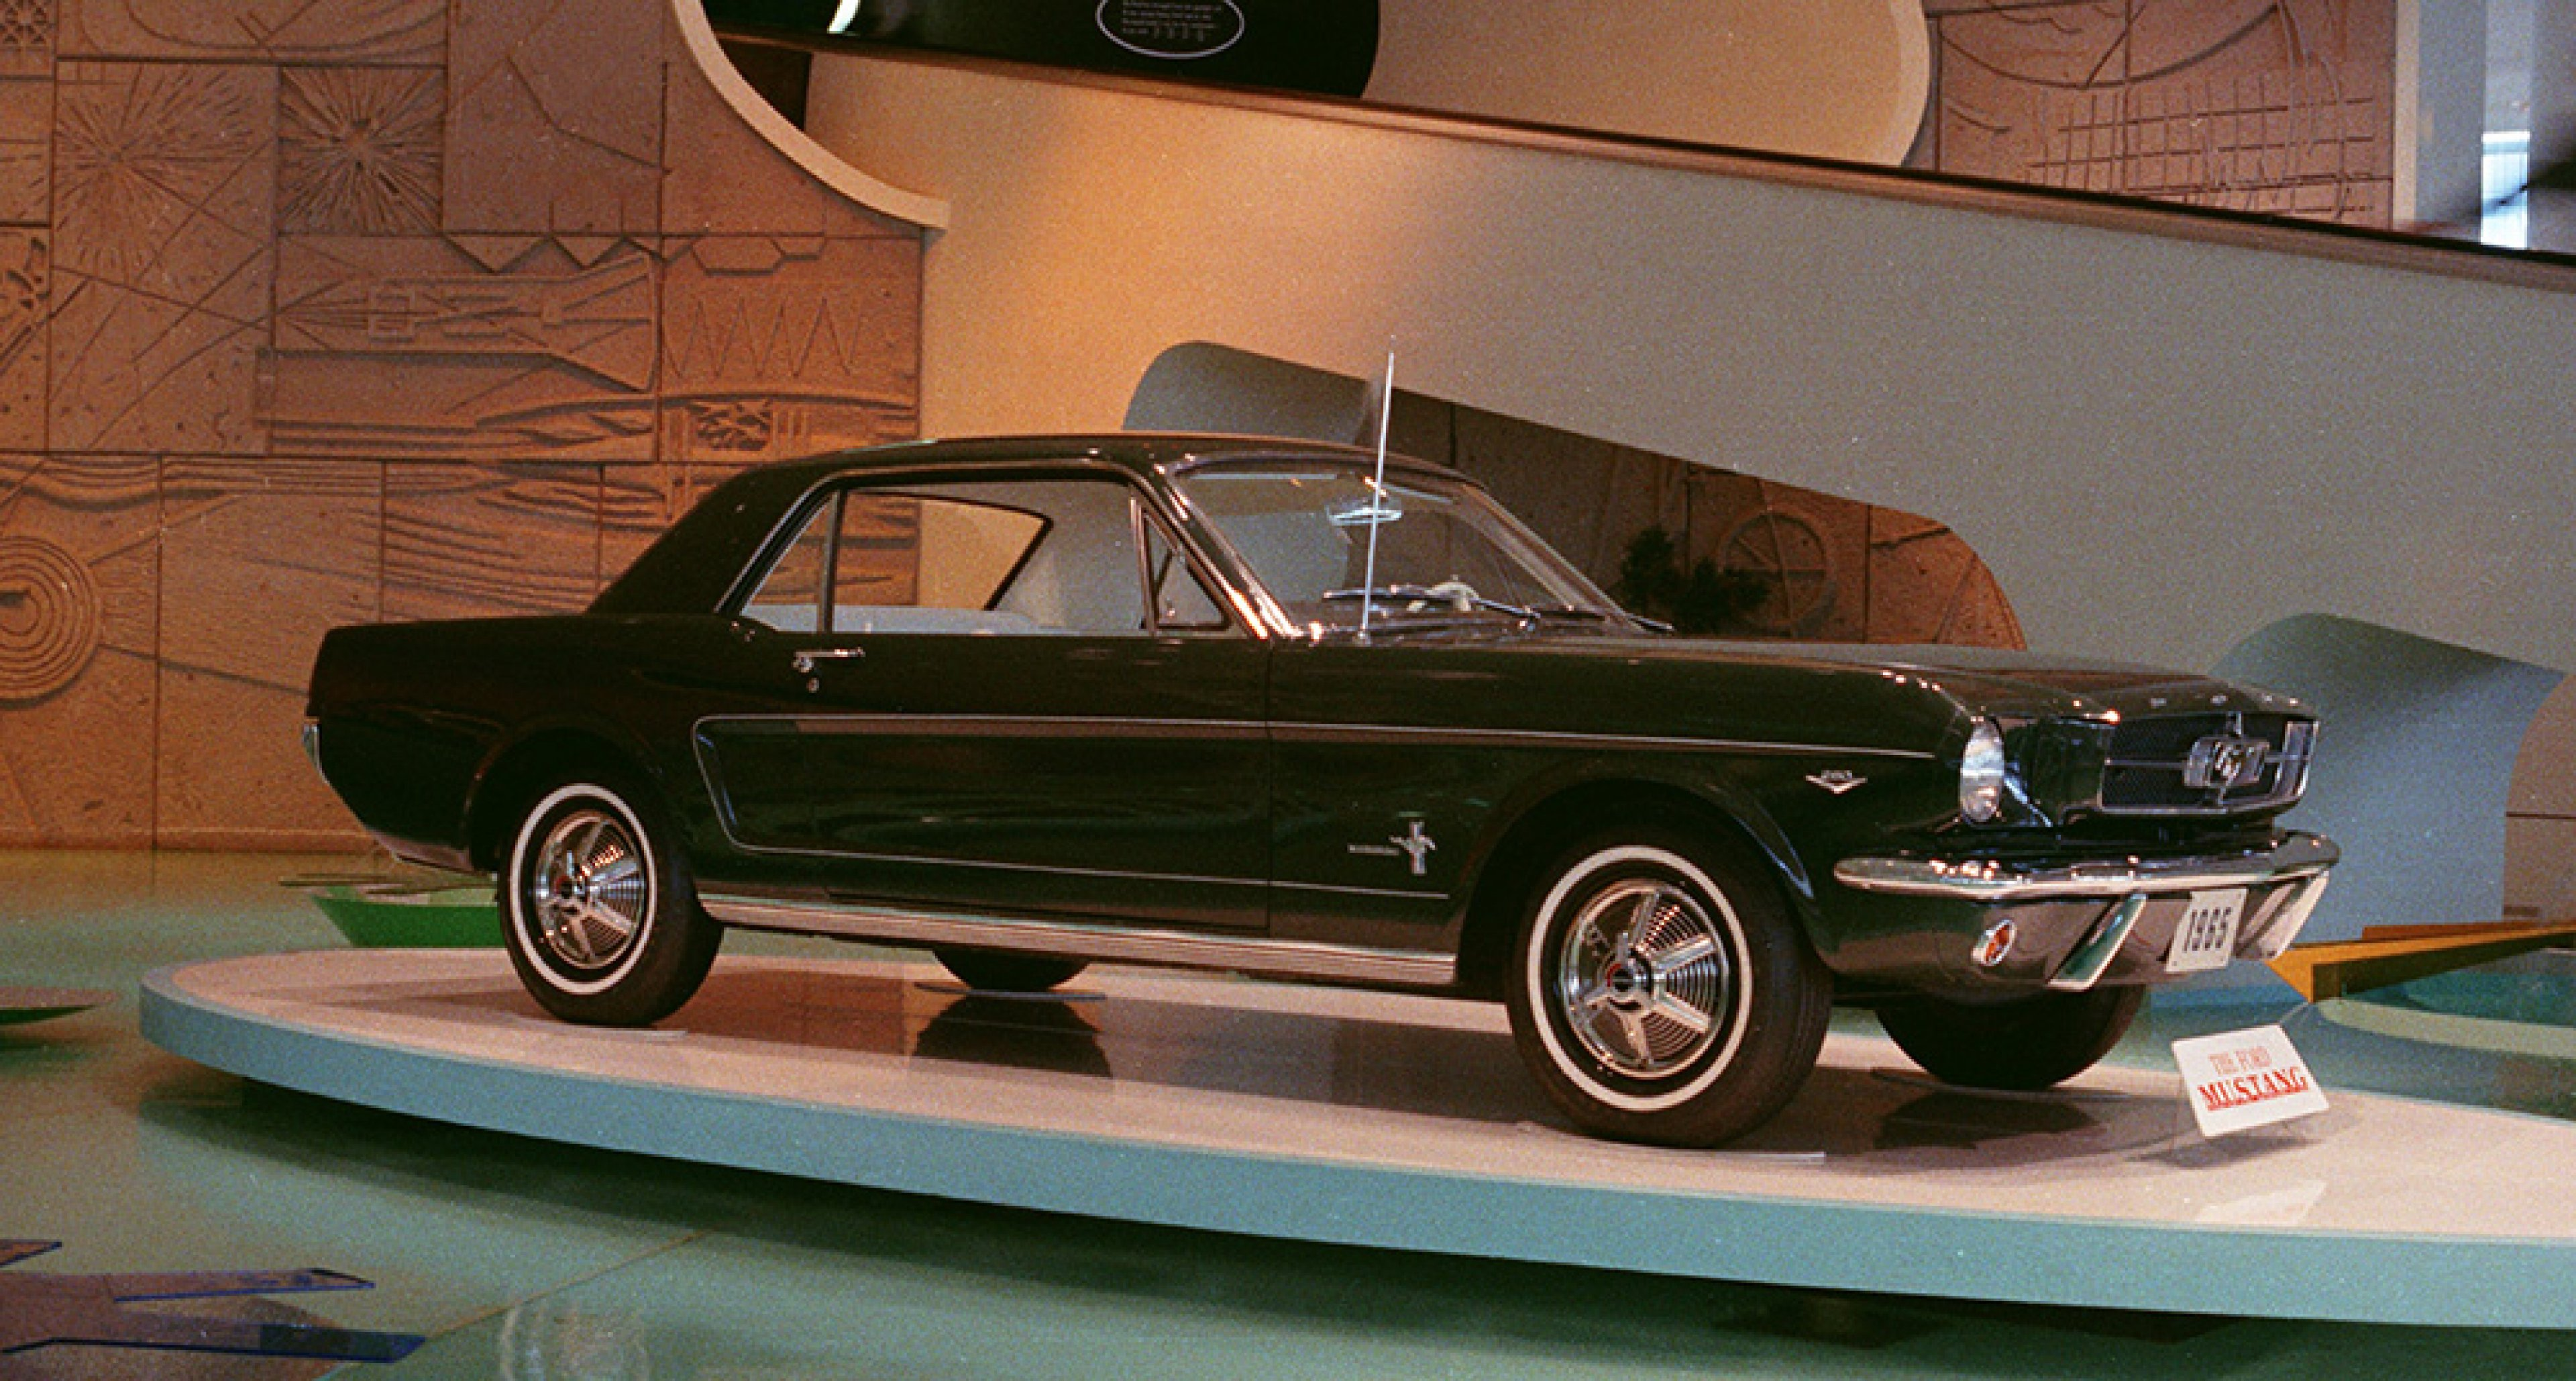 The first Ford Mustang at the 1964 New York World's Fair.